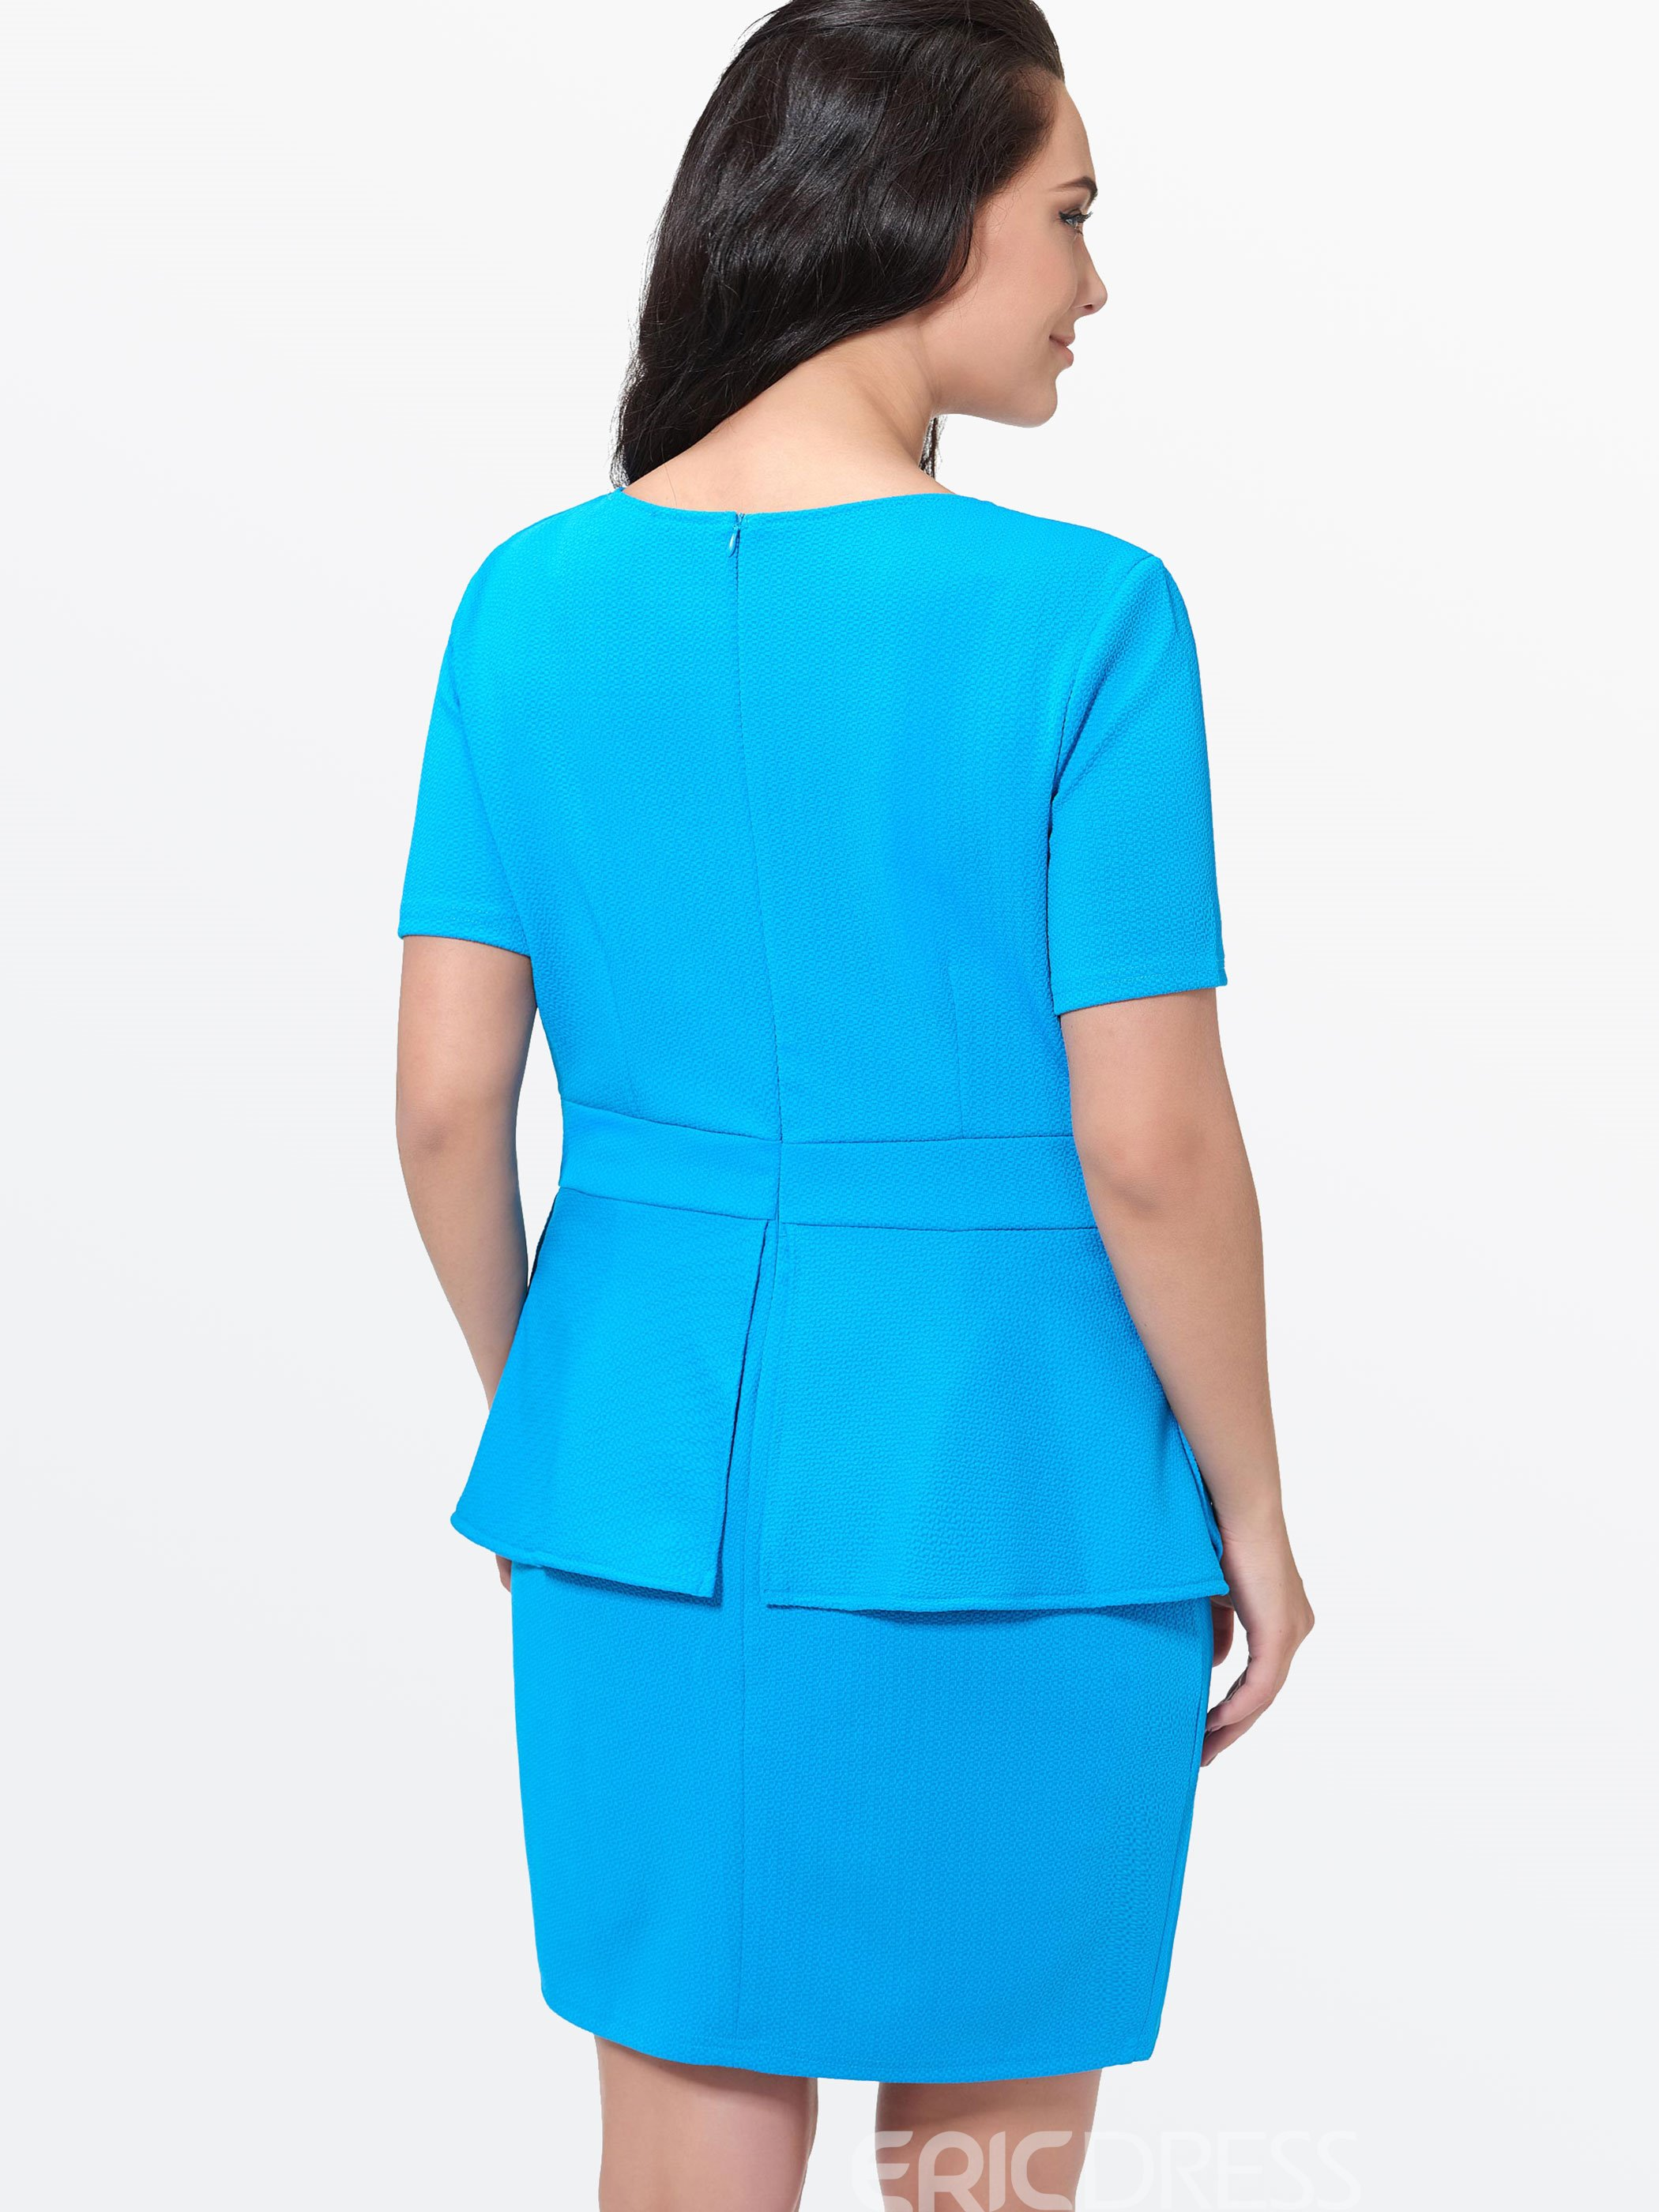 Ericdress Short Sleeve Plain Bodycon Dress